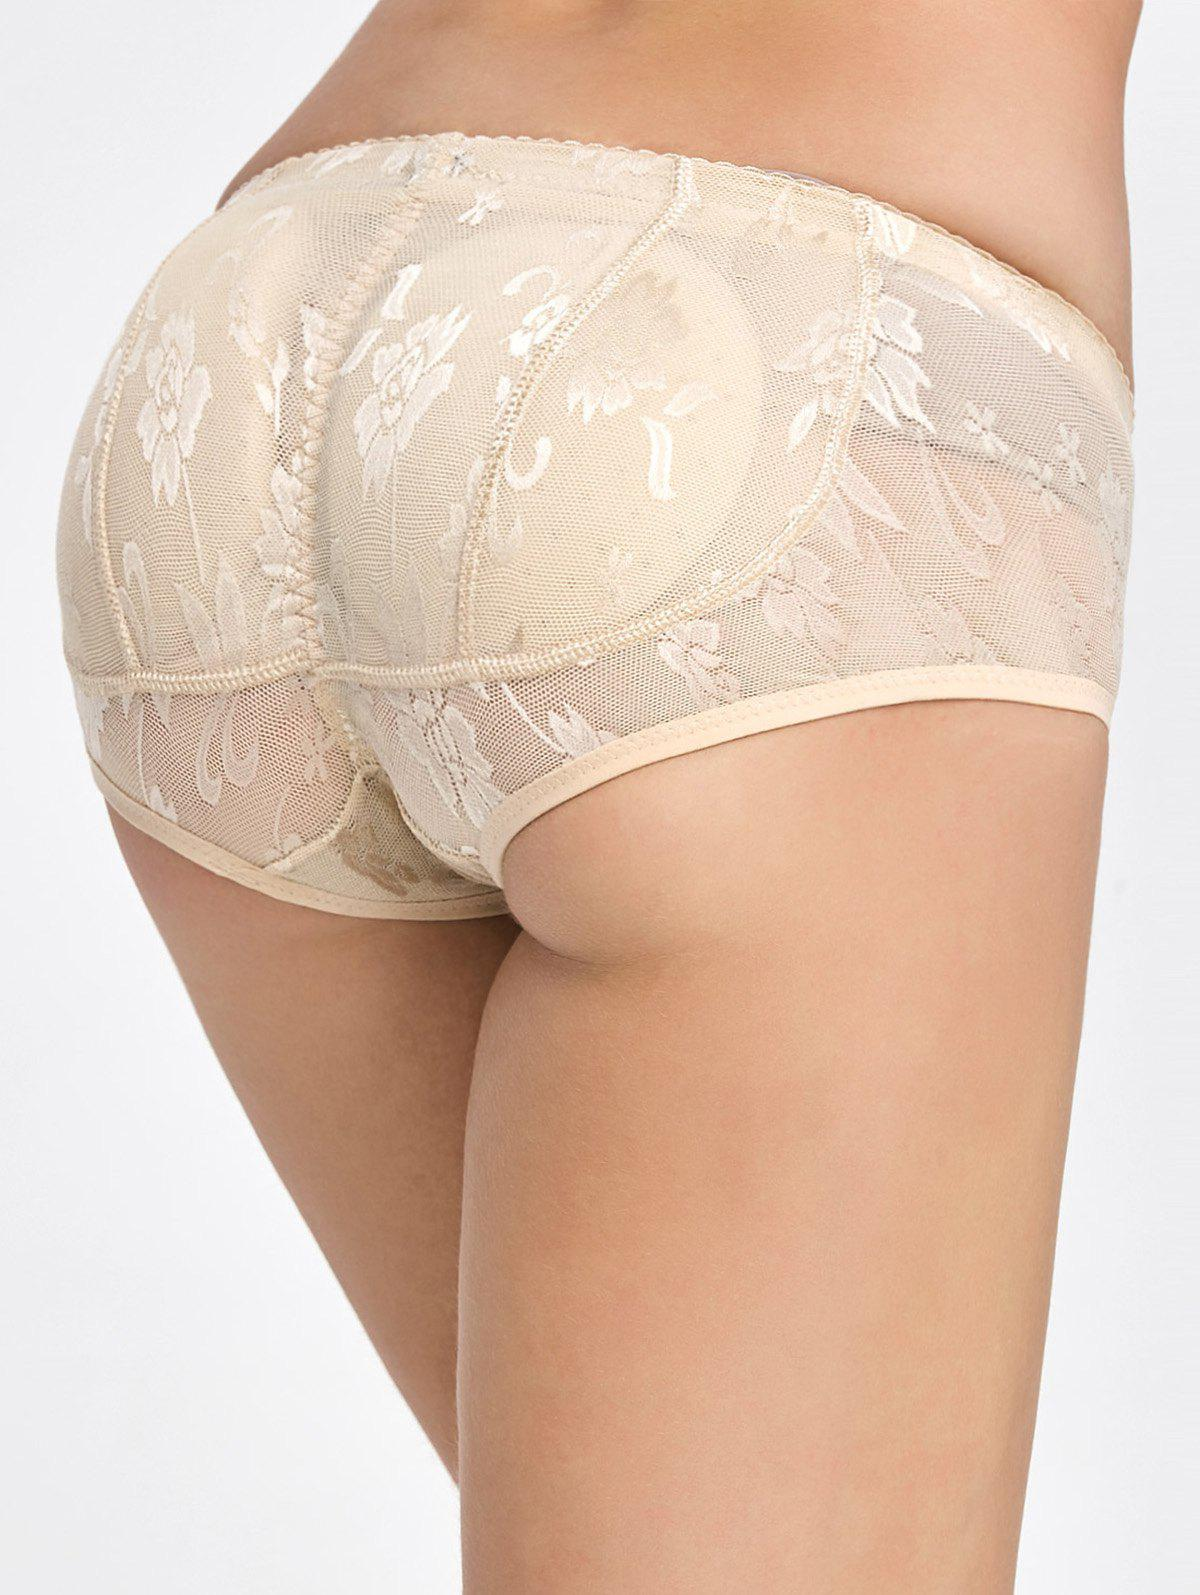 Padded Lace Insert Briefs - COMPLEXION M